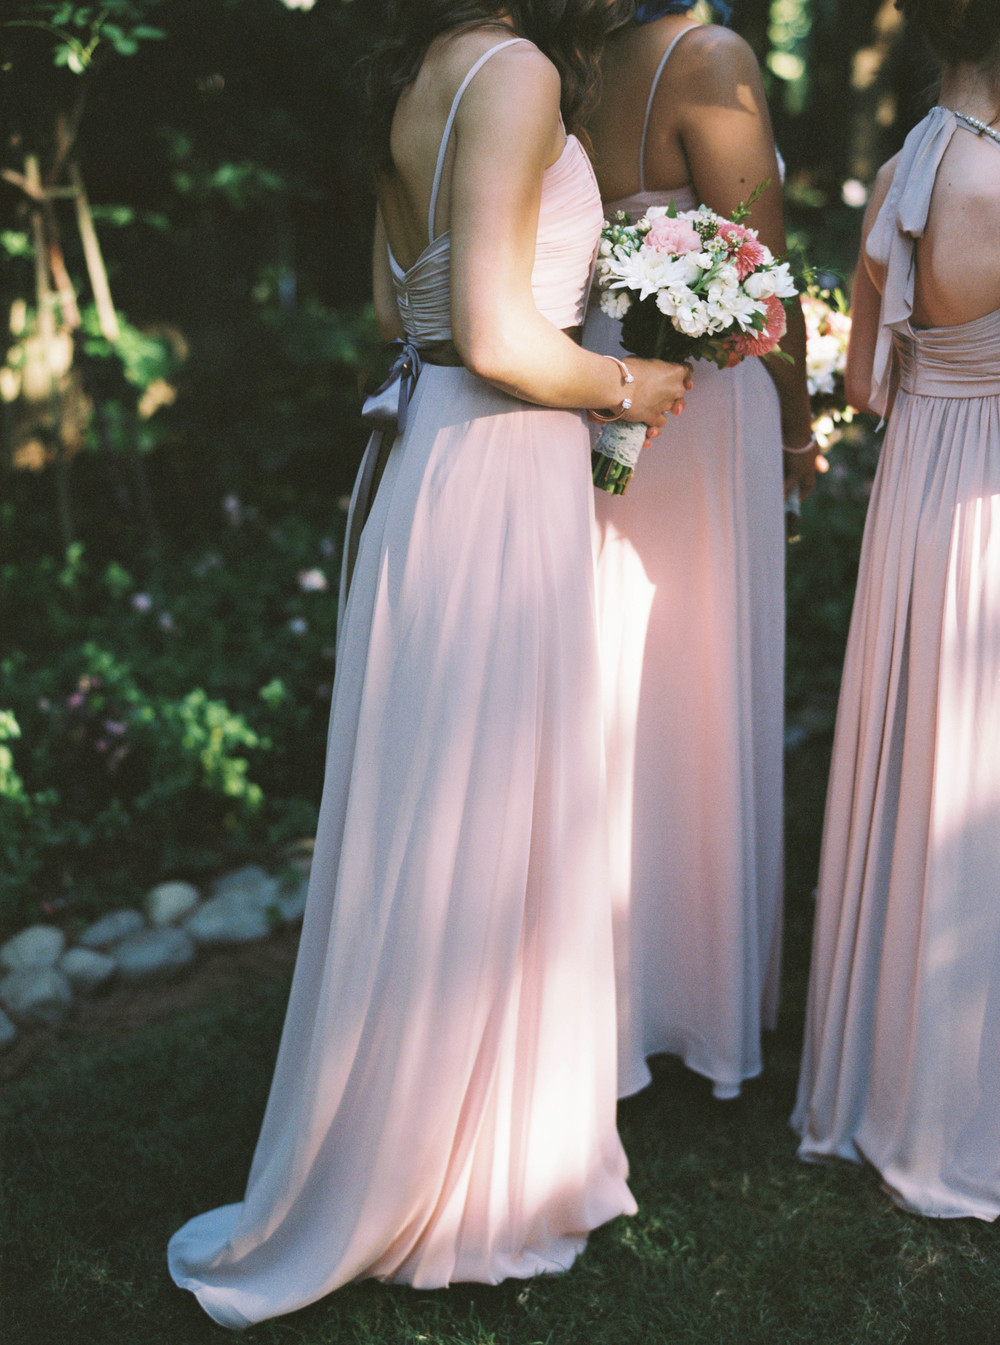 074johnna&jake+wine&roses+california+fineart+film+images+wedding+photography+videography.jpg